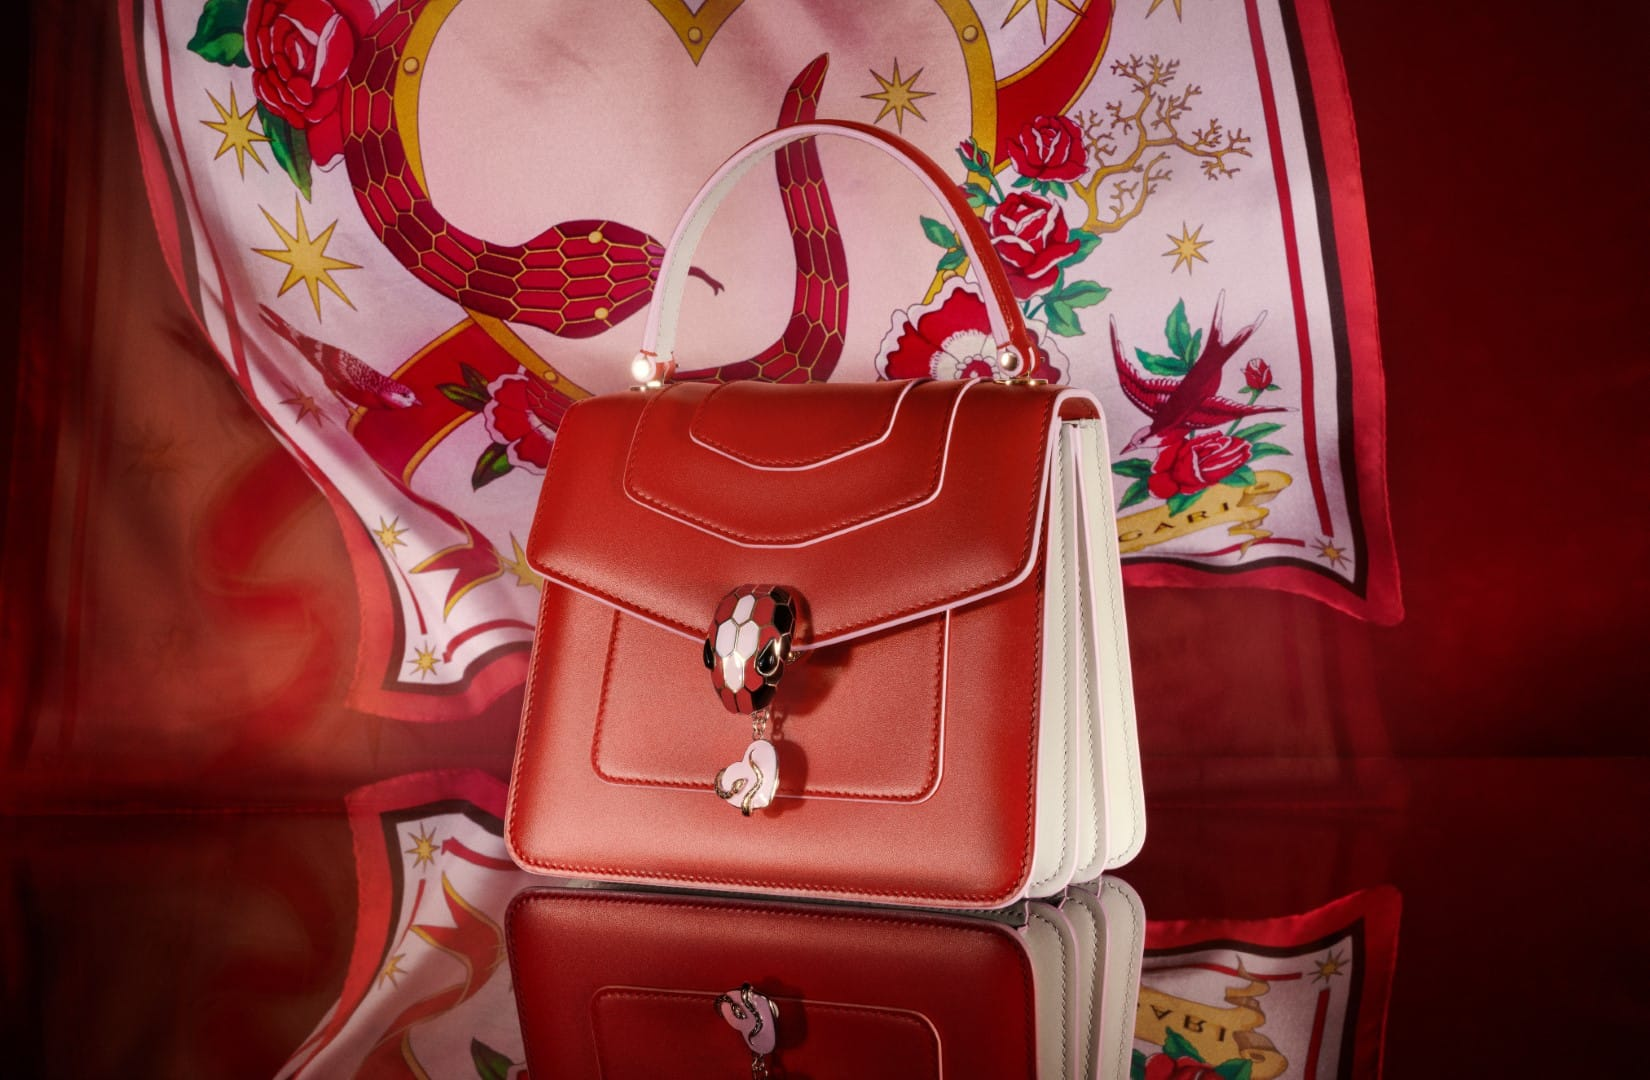 New Bvlgari Bag for Your Valentine